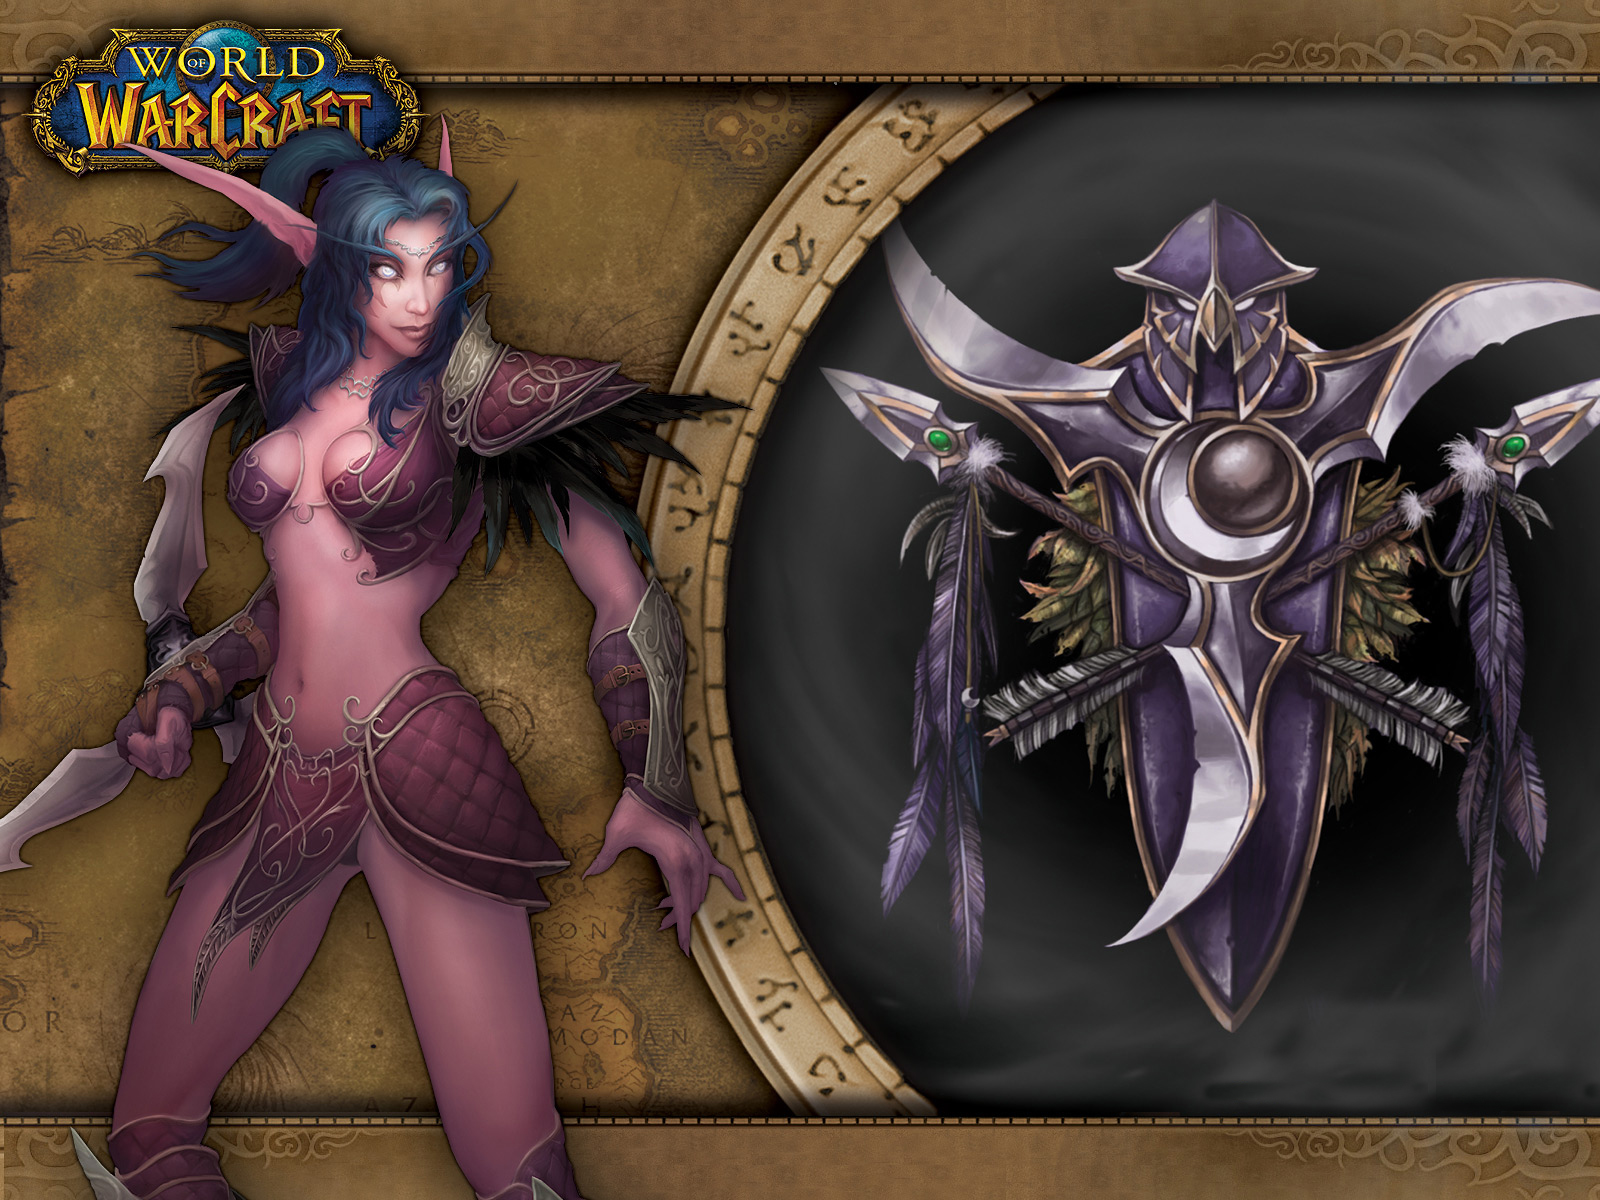 World of warcraft night elf s enormous  naked comic